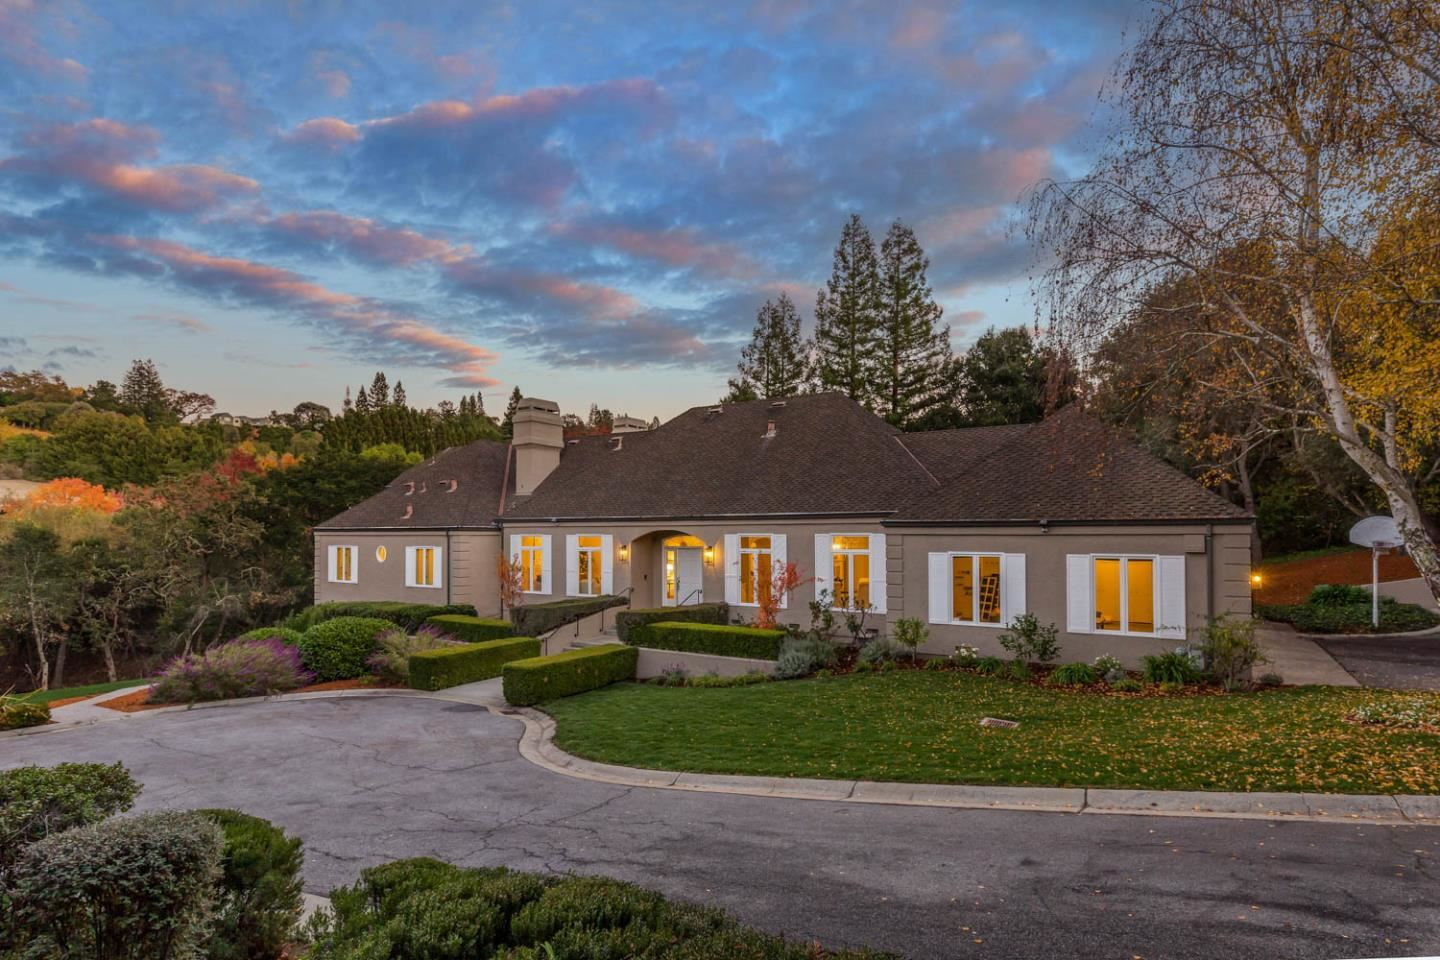 Photo for 9 Knoll VIS, ATHERTON, CA 94027 (MLS # ML81822101)